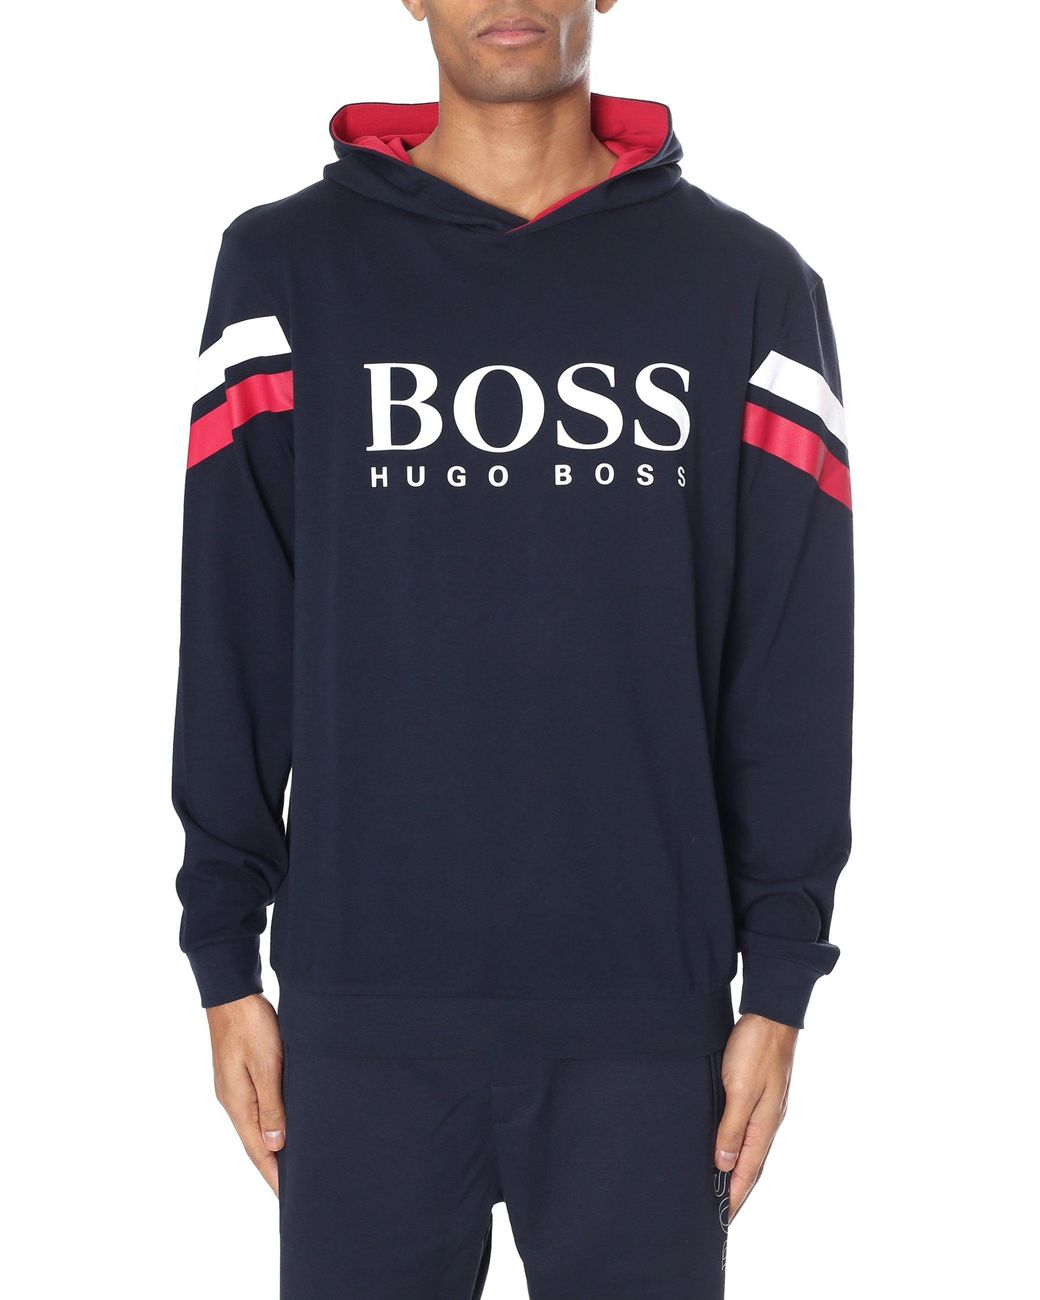 588295627 BOSS by Hugo Boss Authentic Popover Hoodie in Blue for Men - Save 29% - Lyst